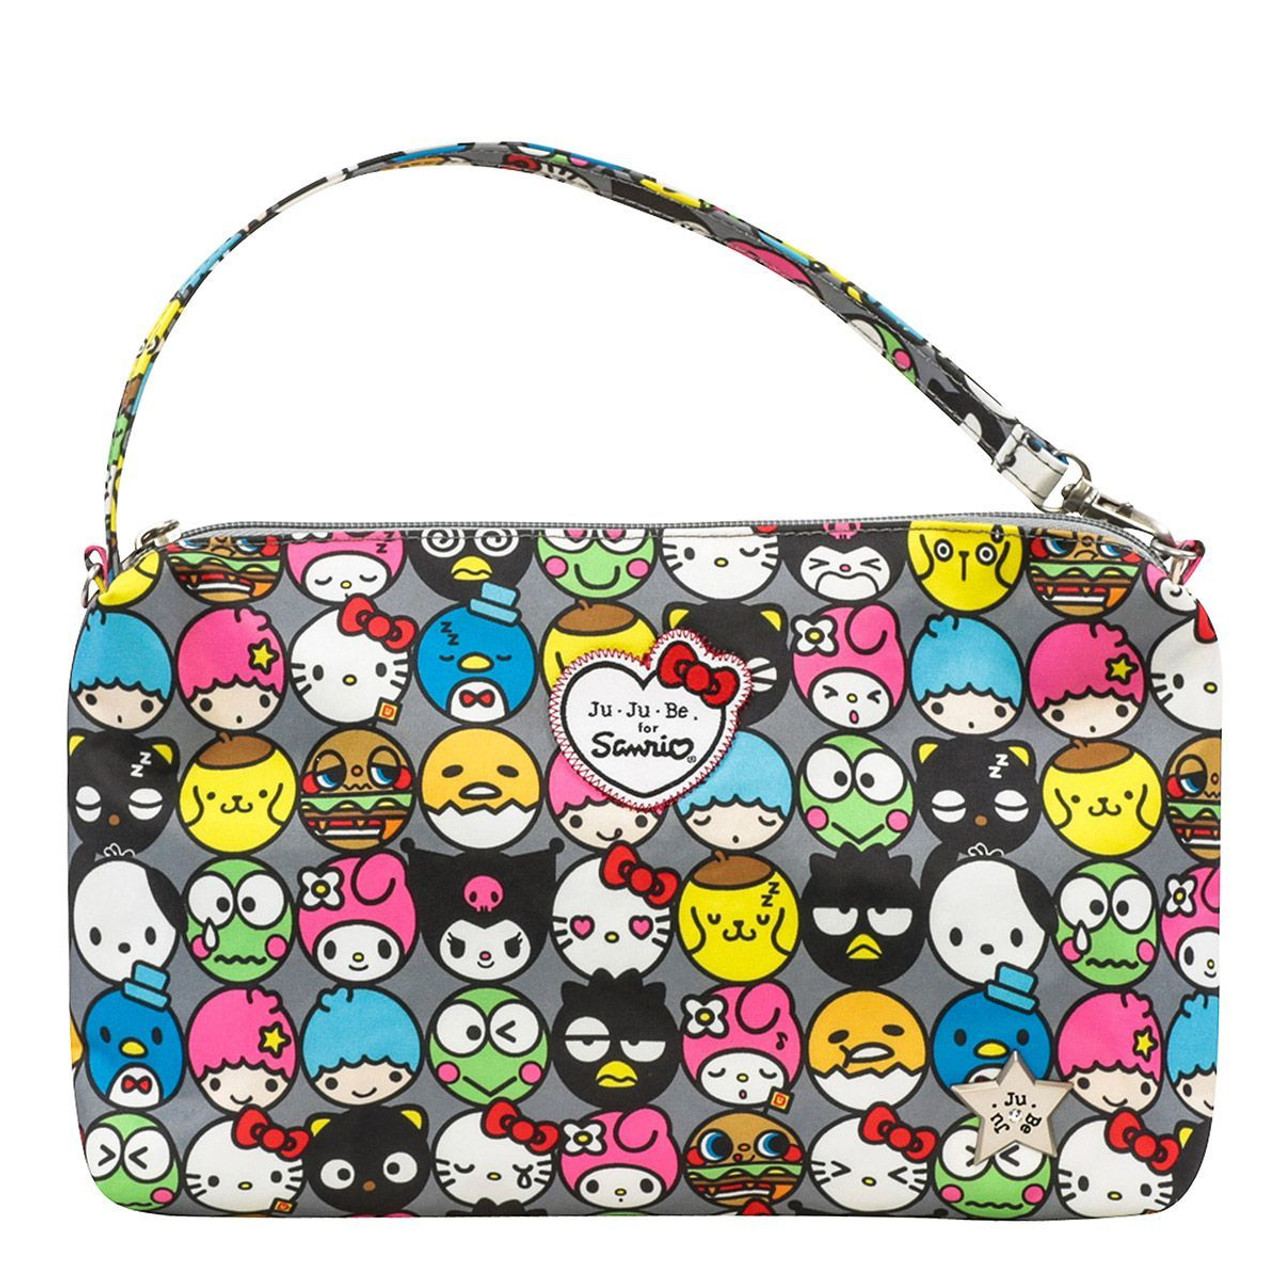 b71174fe9 Ju-Ju-Be Sanrio Hello Kitty Be Quick Hello Friends Handbag Purse ...